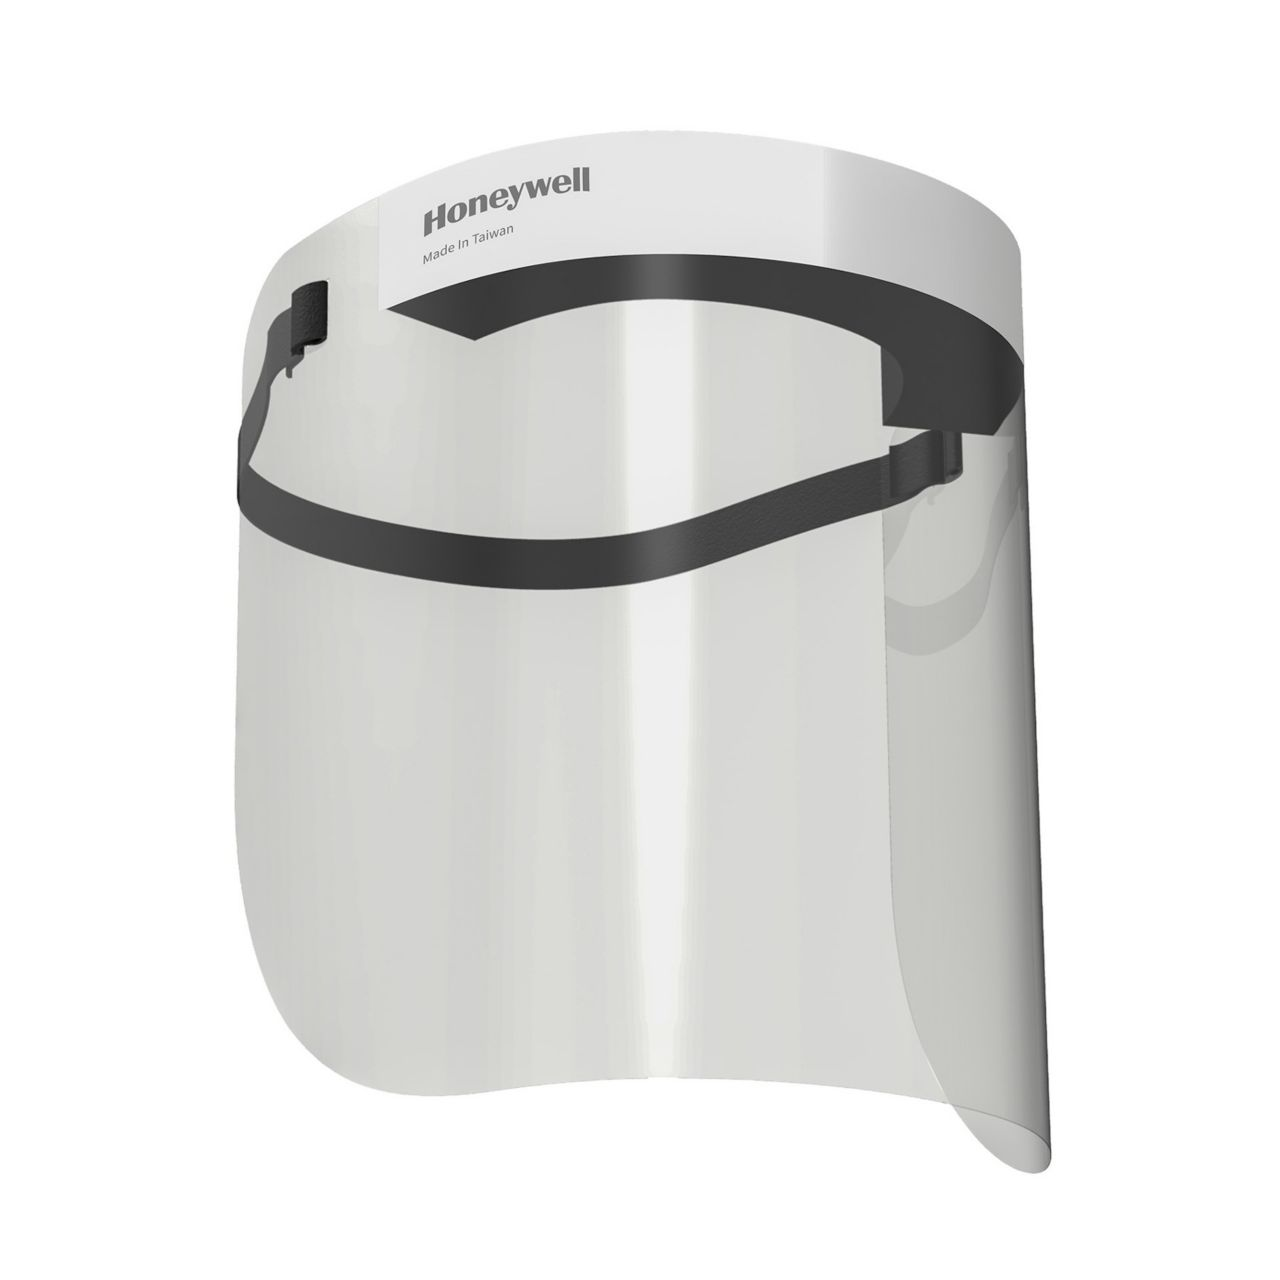 sps-his-honeywell-disposable-face-shield-product